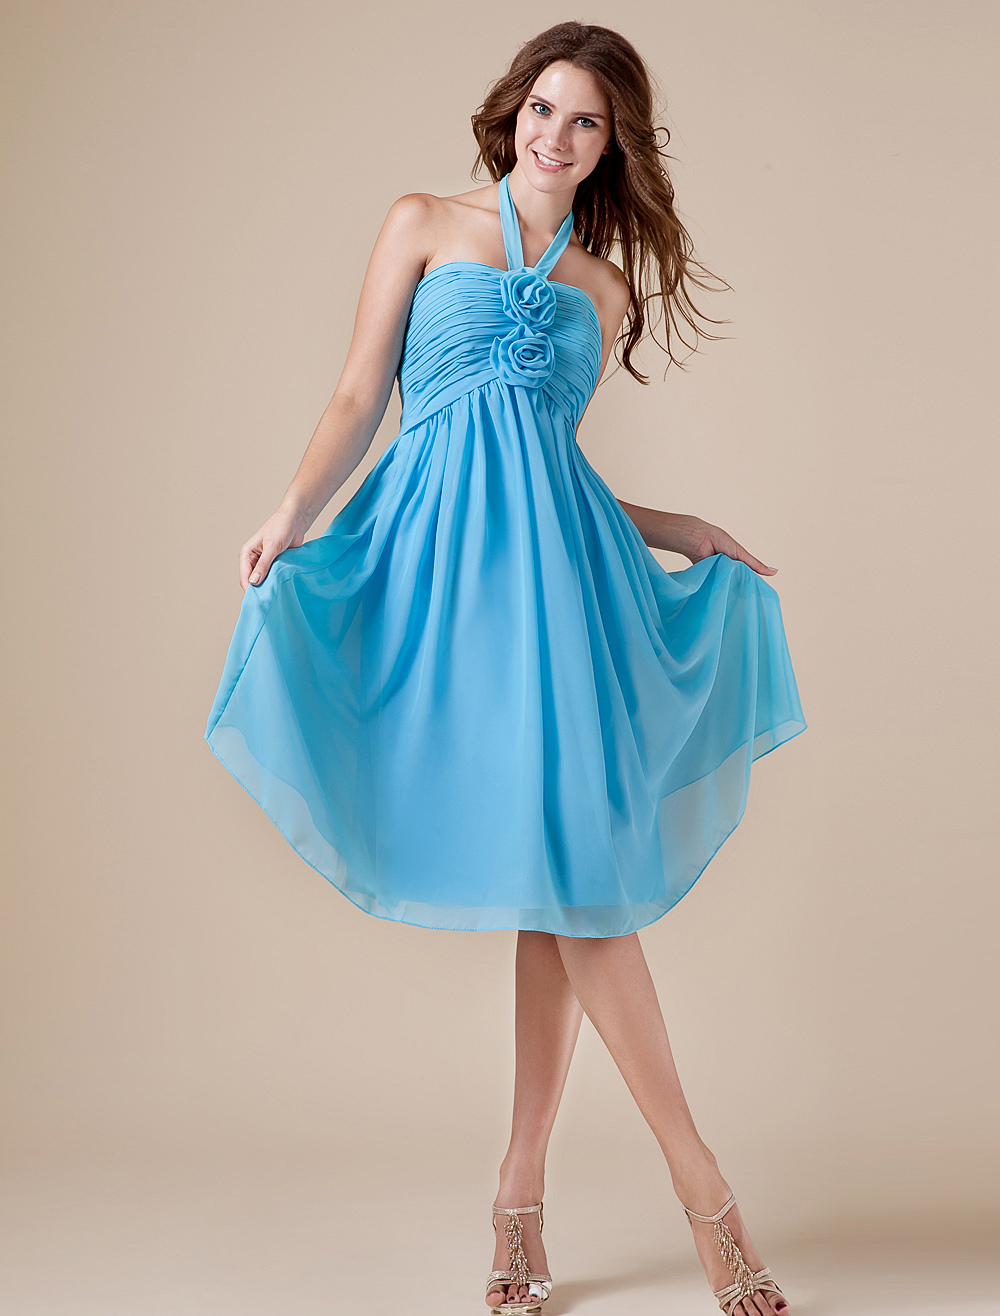 Halter Bridesmaid Dress Aqua Chiffon Flower A line Knee Length Party Dress